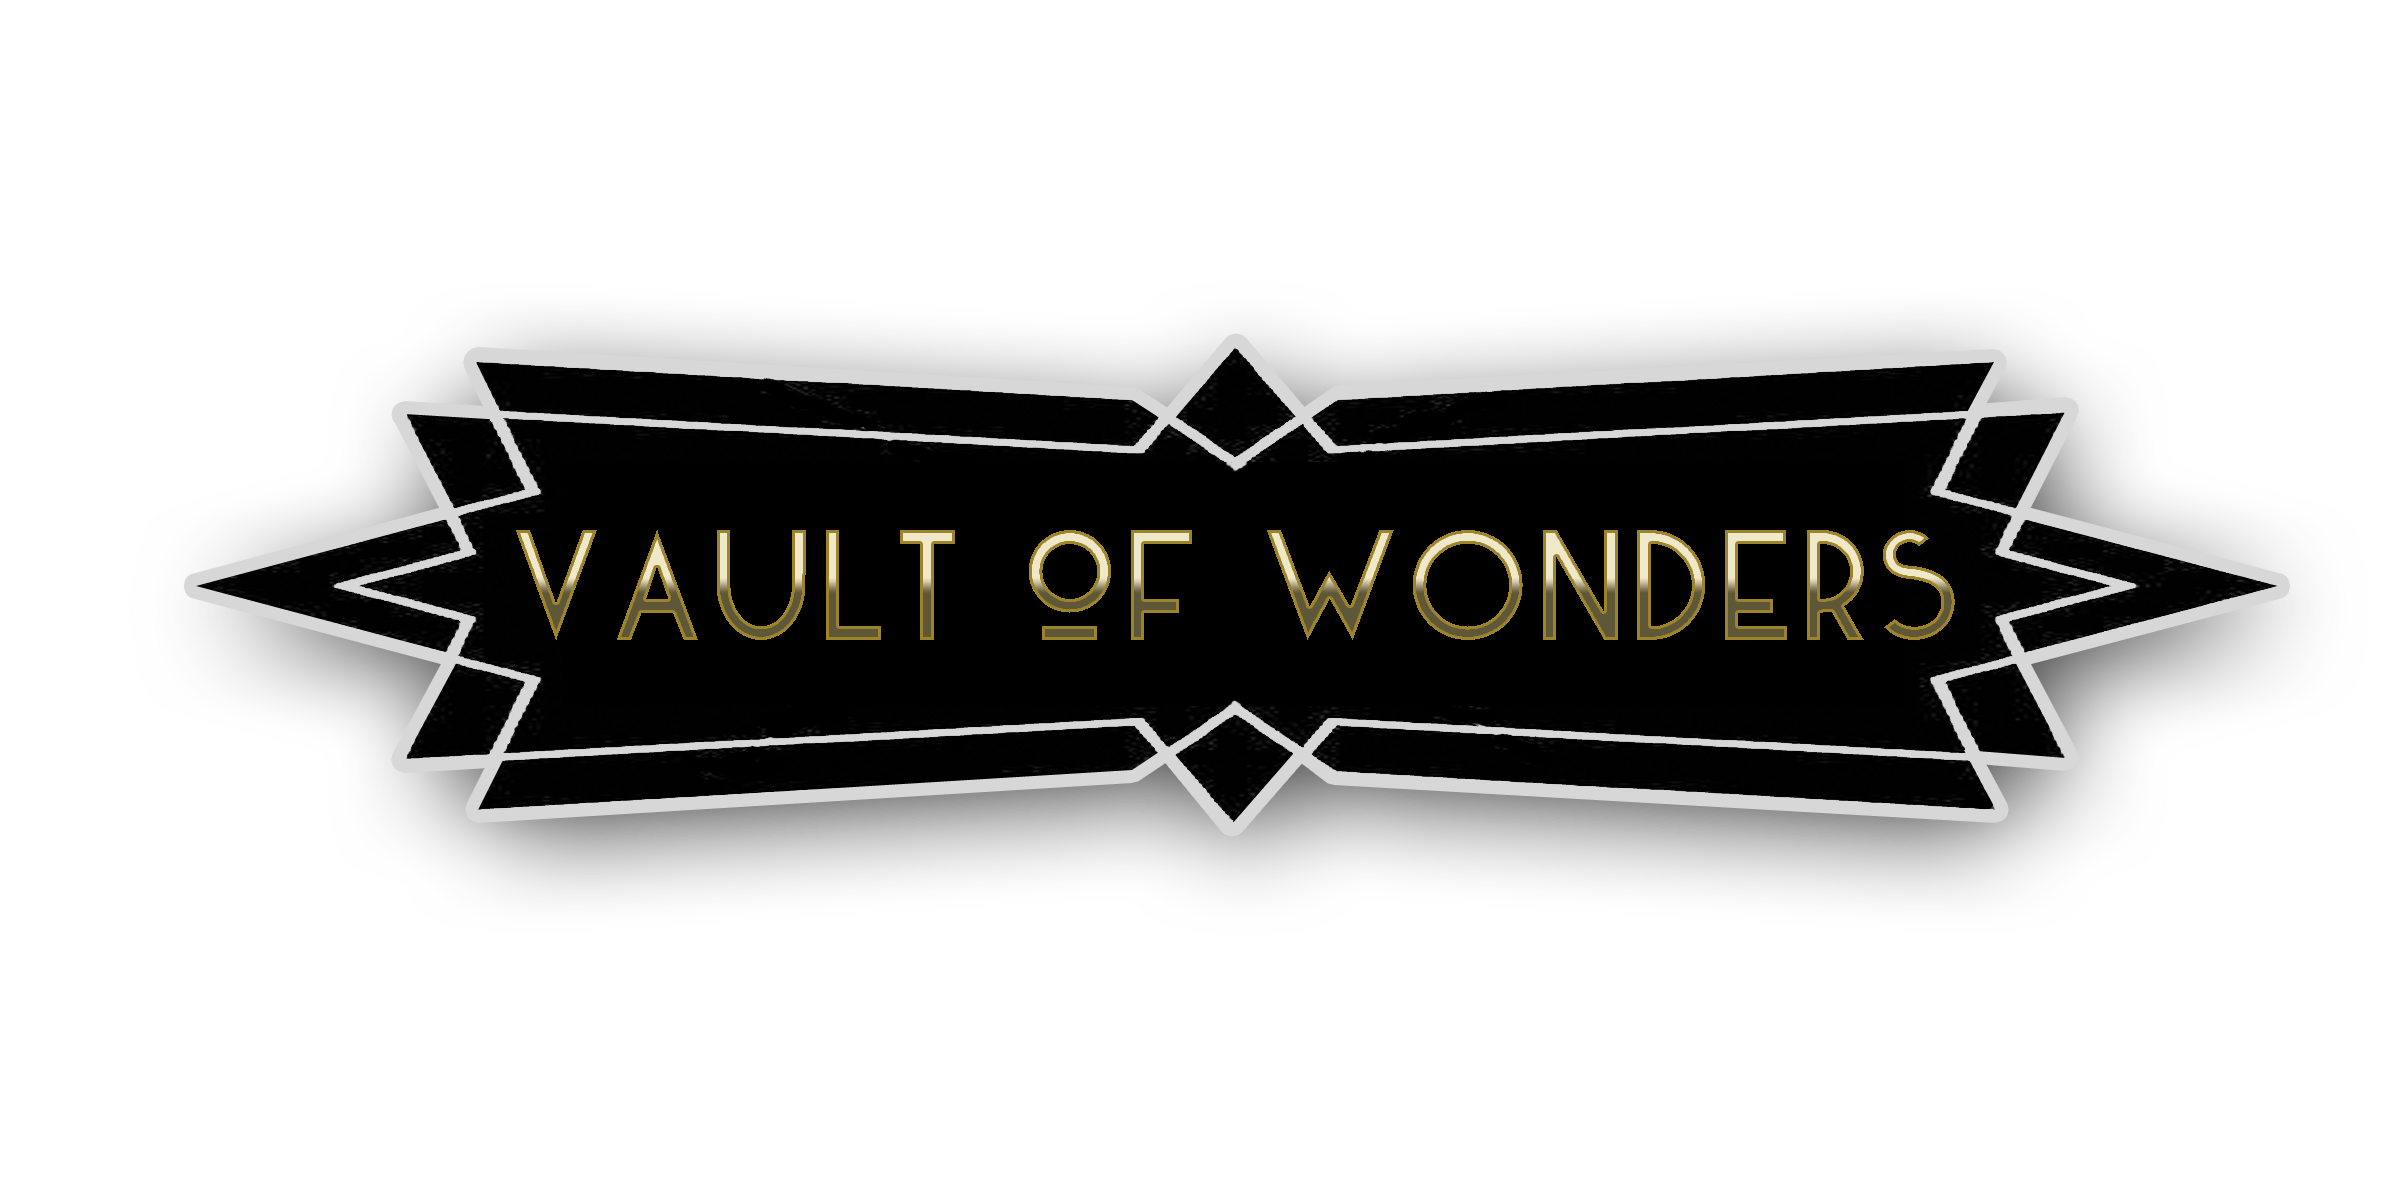 The Vault of Wonders